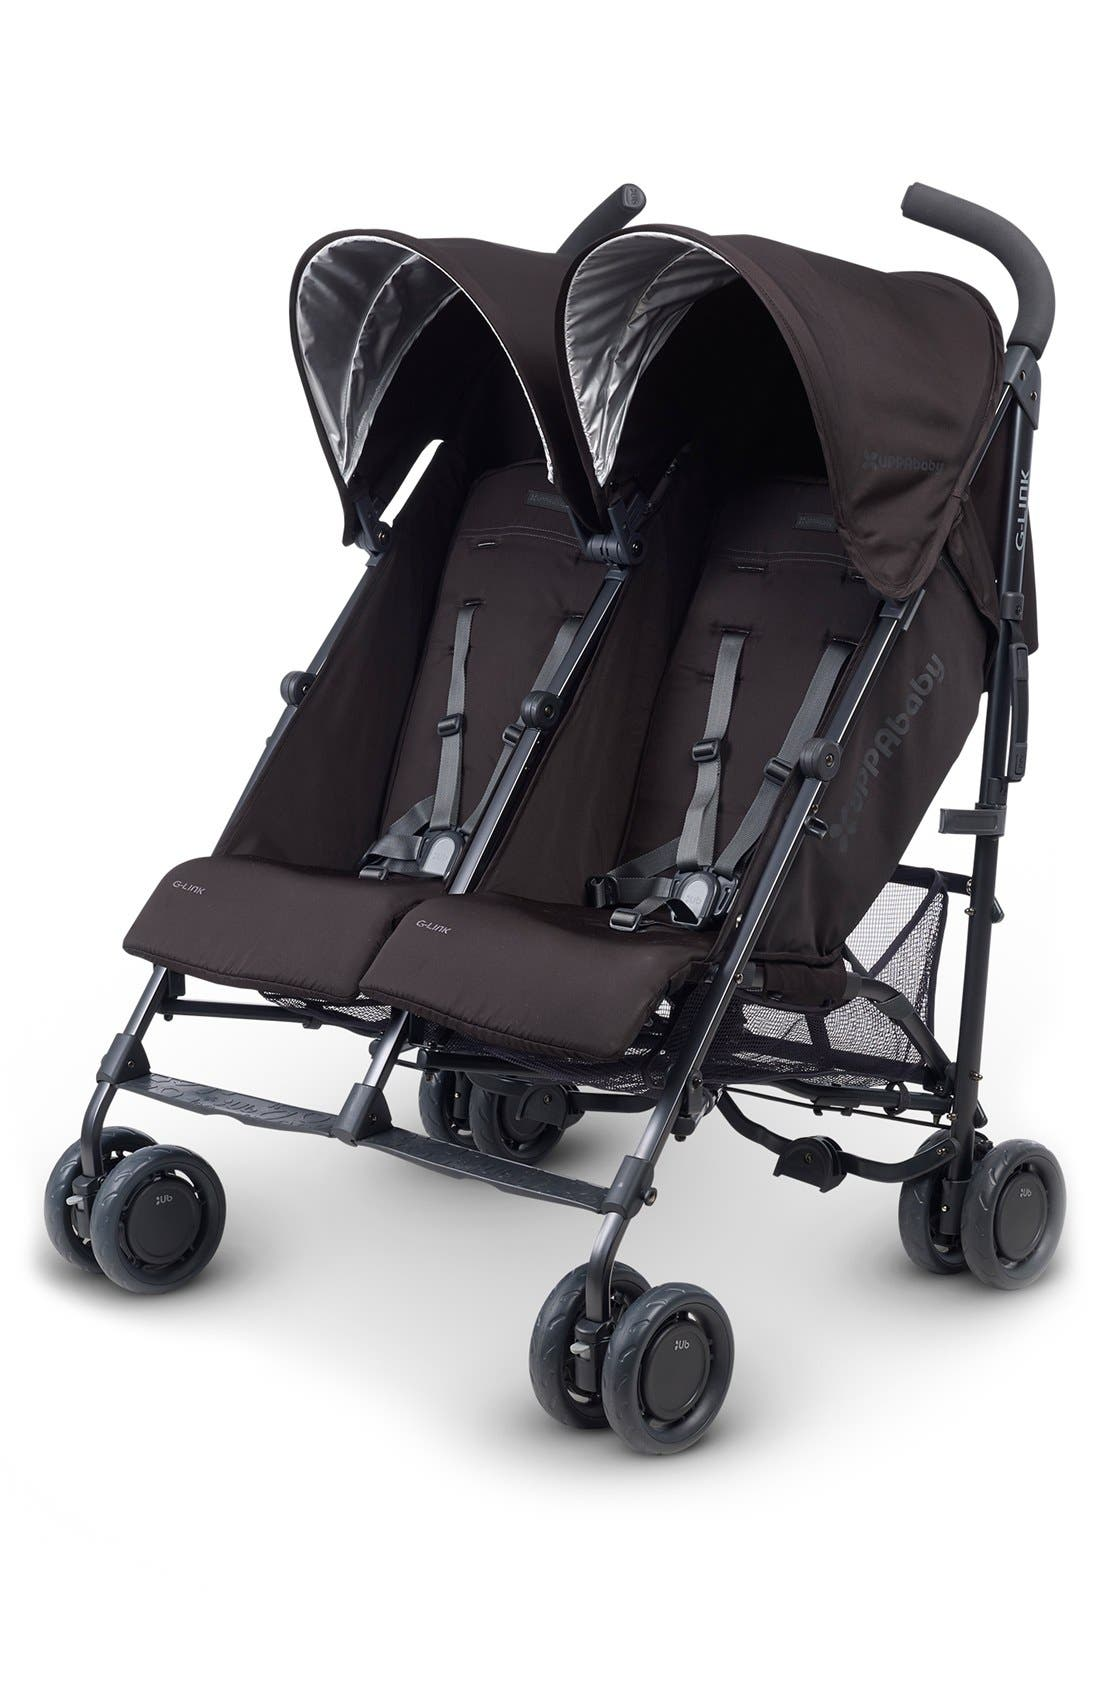 G-LINK Jake Aluminum Frame Reclining Side by Side Umbrella Stroller,                         Main,                         color, Black